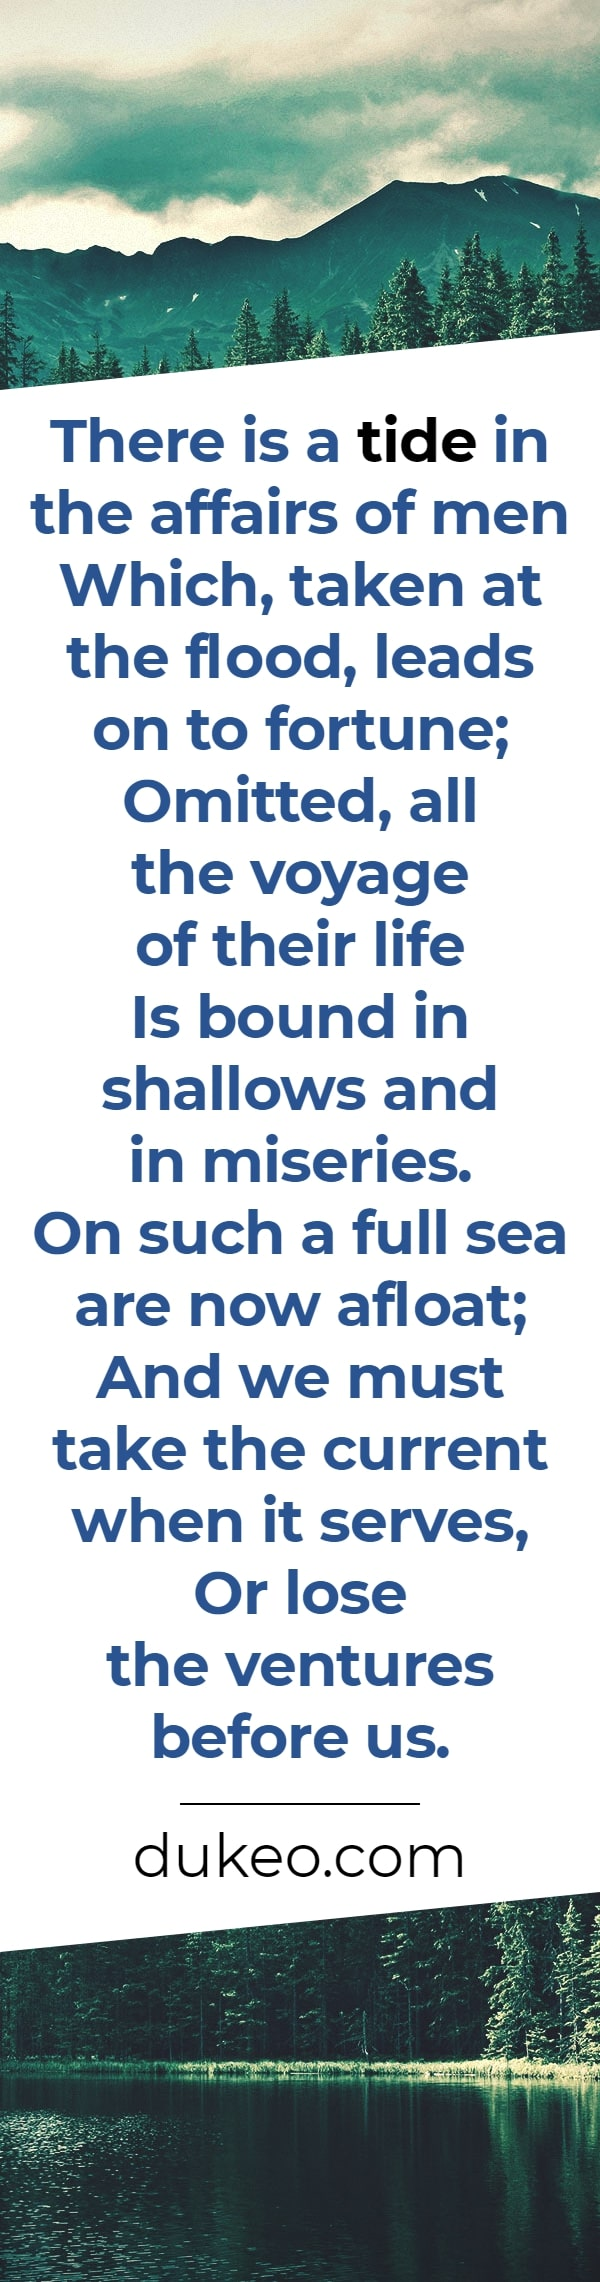 There is a tide in the affairs of men<br />Which, taken at the flood, leads on to fortune;<br />Omitted, all the voyage of their life<br />Is bound in shallows and in miseries.<br />On such a full sea are now afloat;<br />And we must take the current when it serves,<br />Or lose the ventures before us.